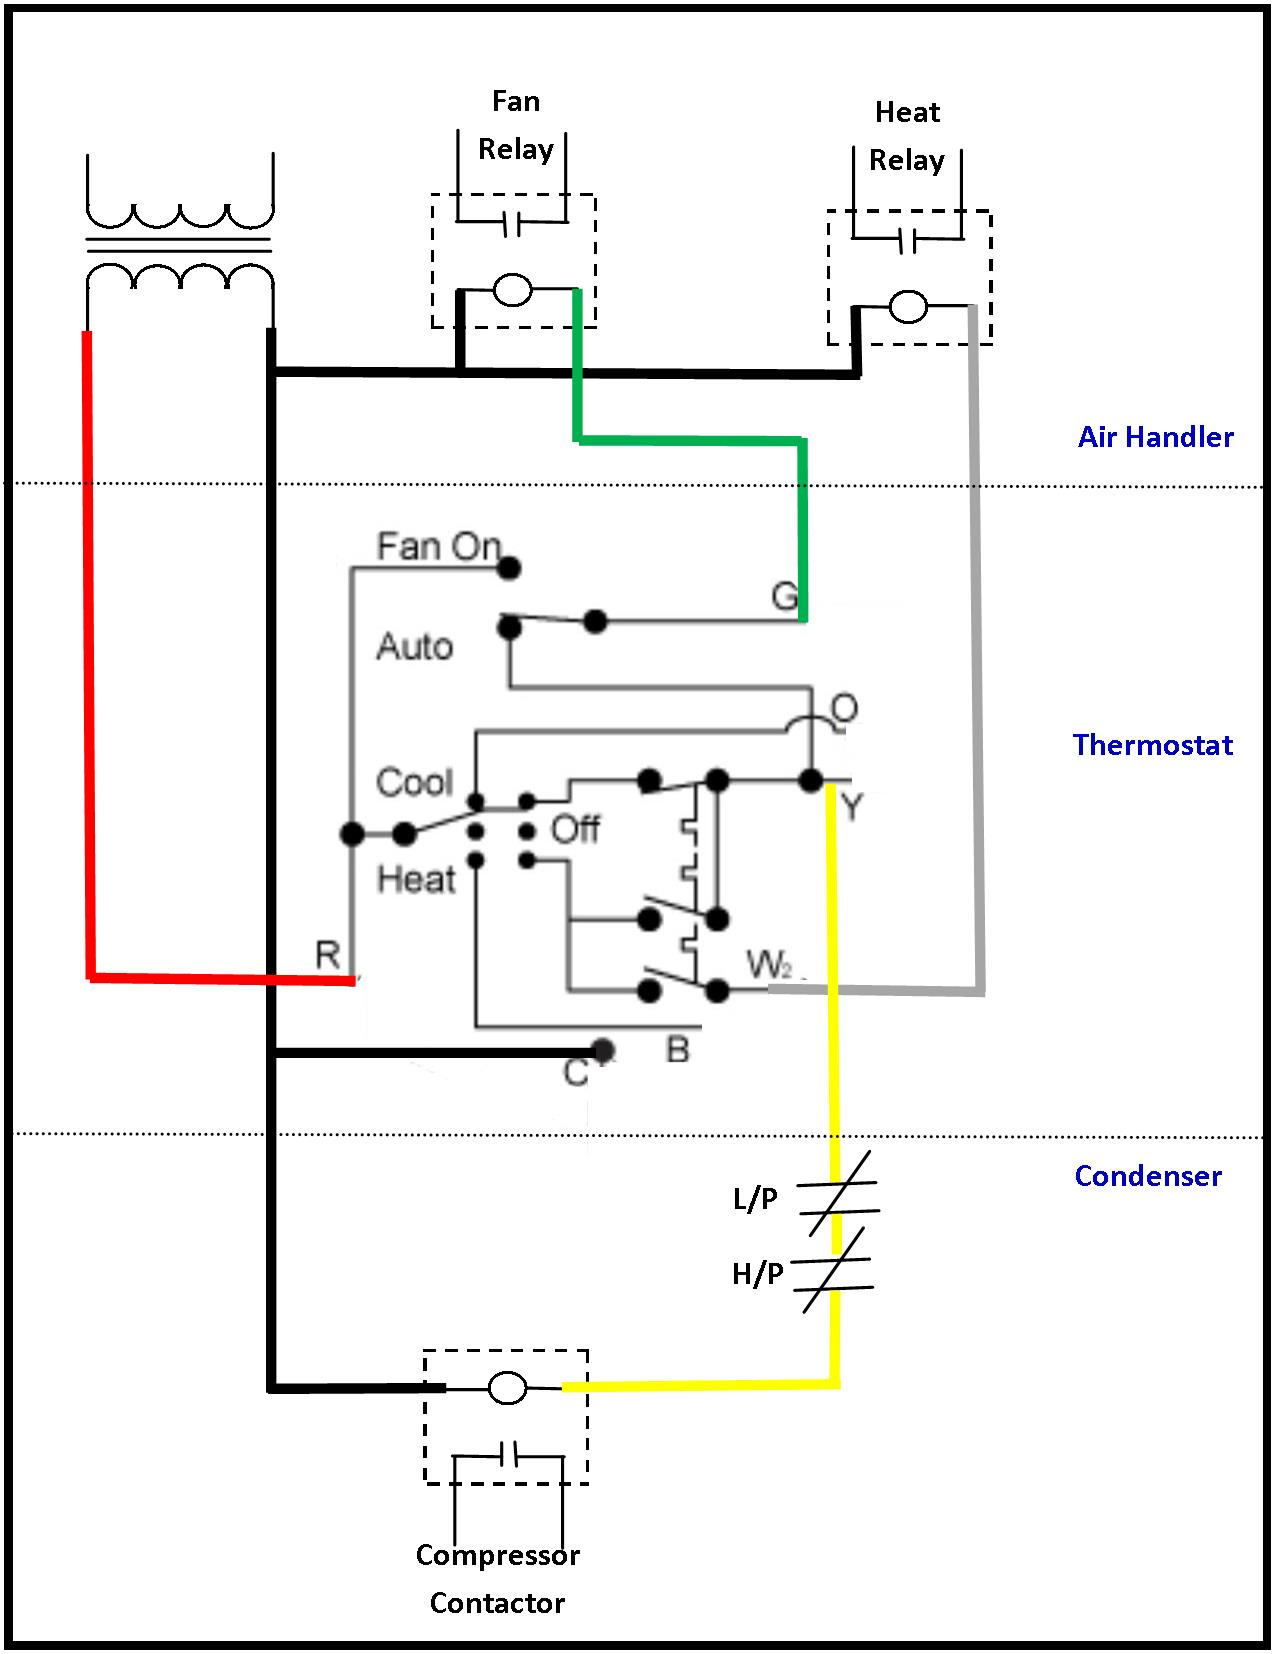 AC low voltage wiring diagram1 hvac wire diagram hvac disconnect wire diagram \u2022 wiring diagrams control relay wiring diagram at mifinder.co